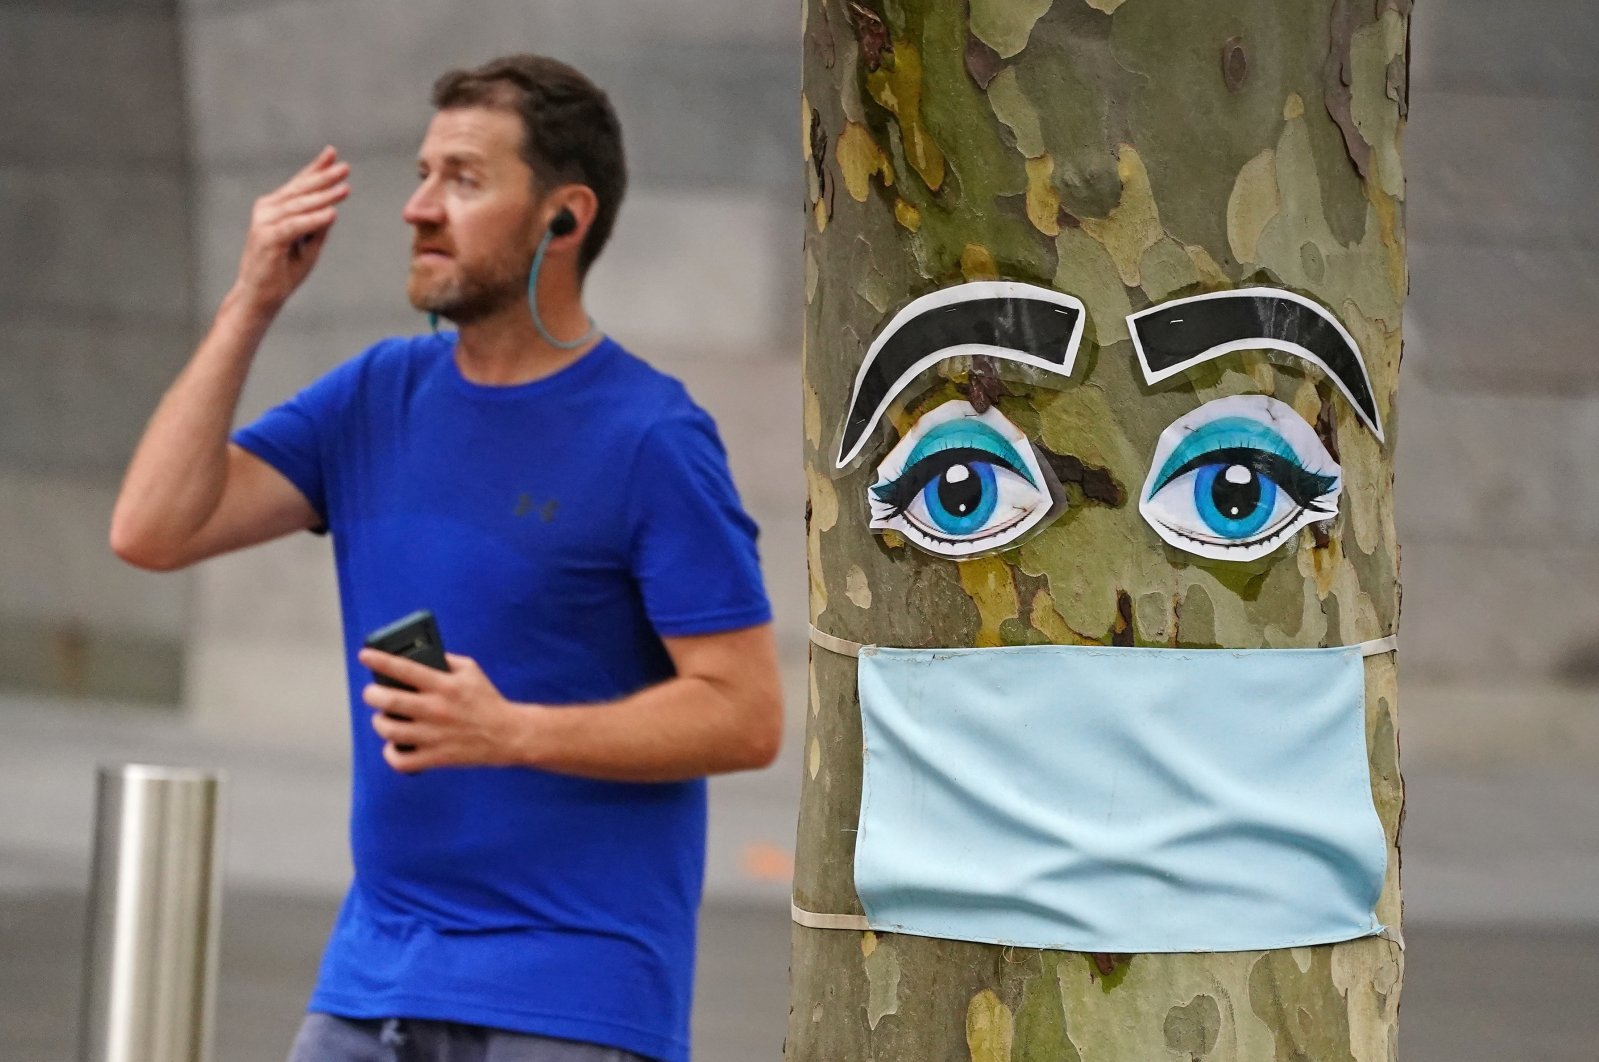 A man walks past a tree with a face mask and eyes stapled to it in Melbourne, Australia, April 26, 2020. (AAP Image via Reuters)